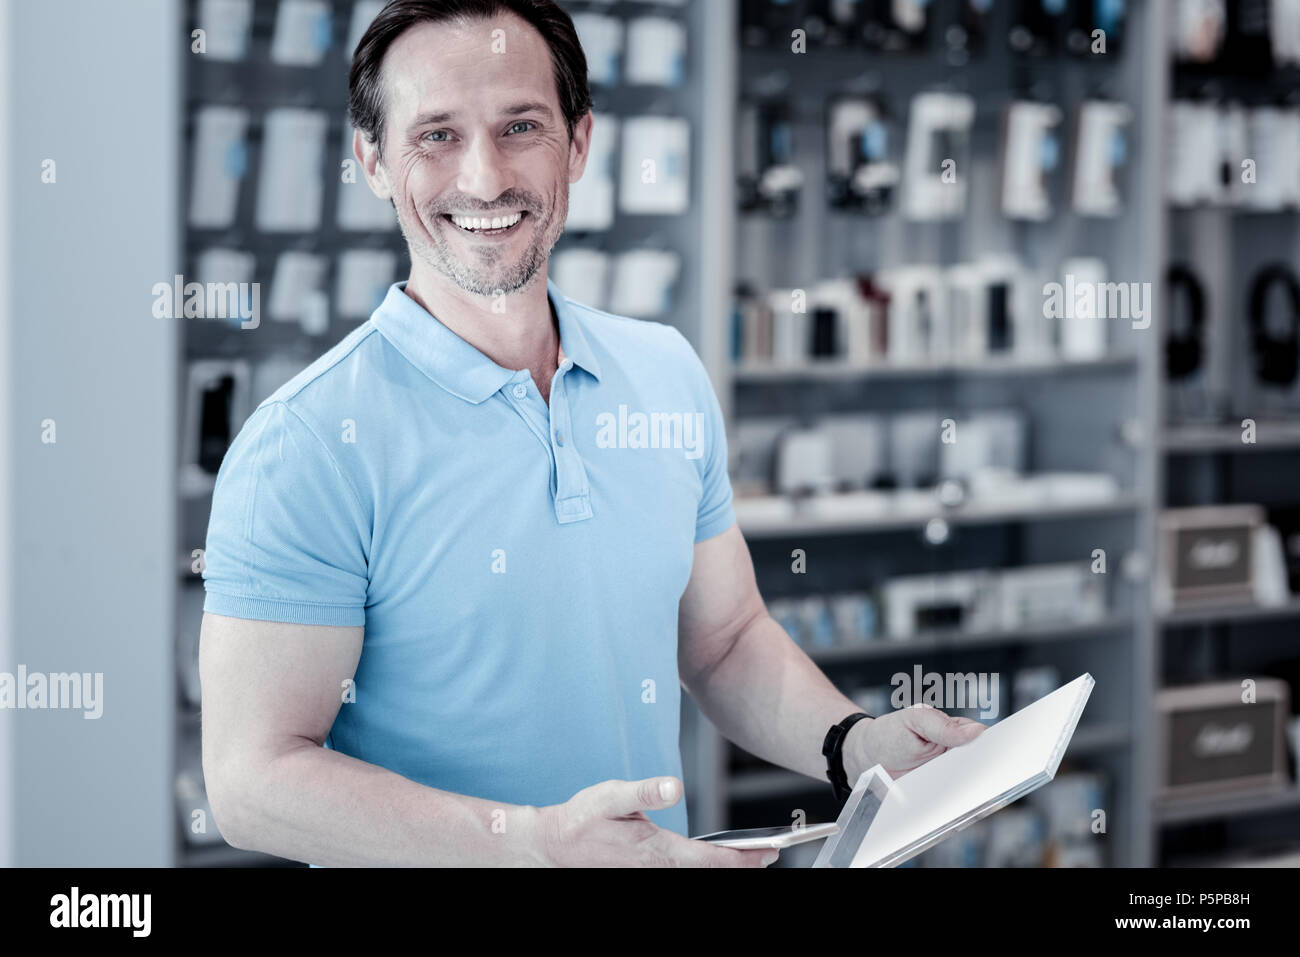 Positive man standing in the electronics shop - Stock Image